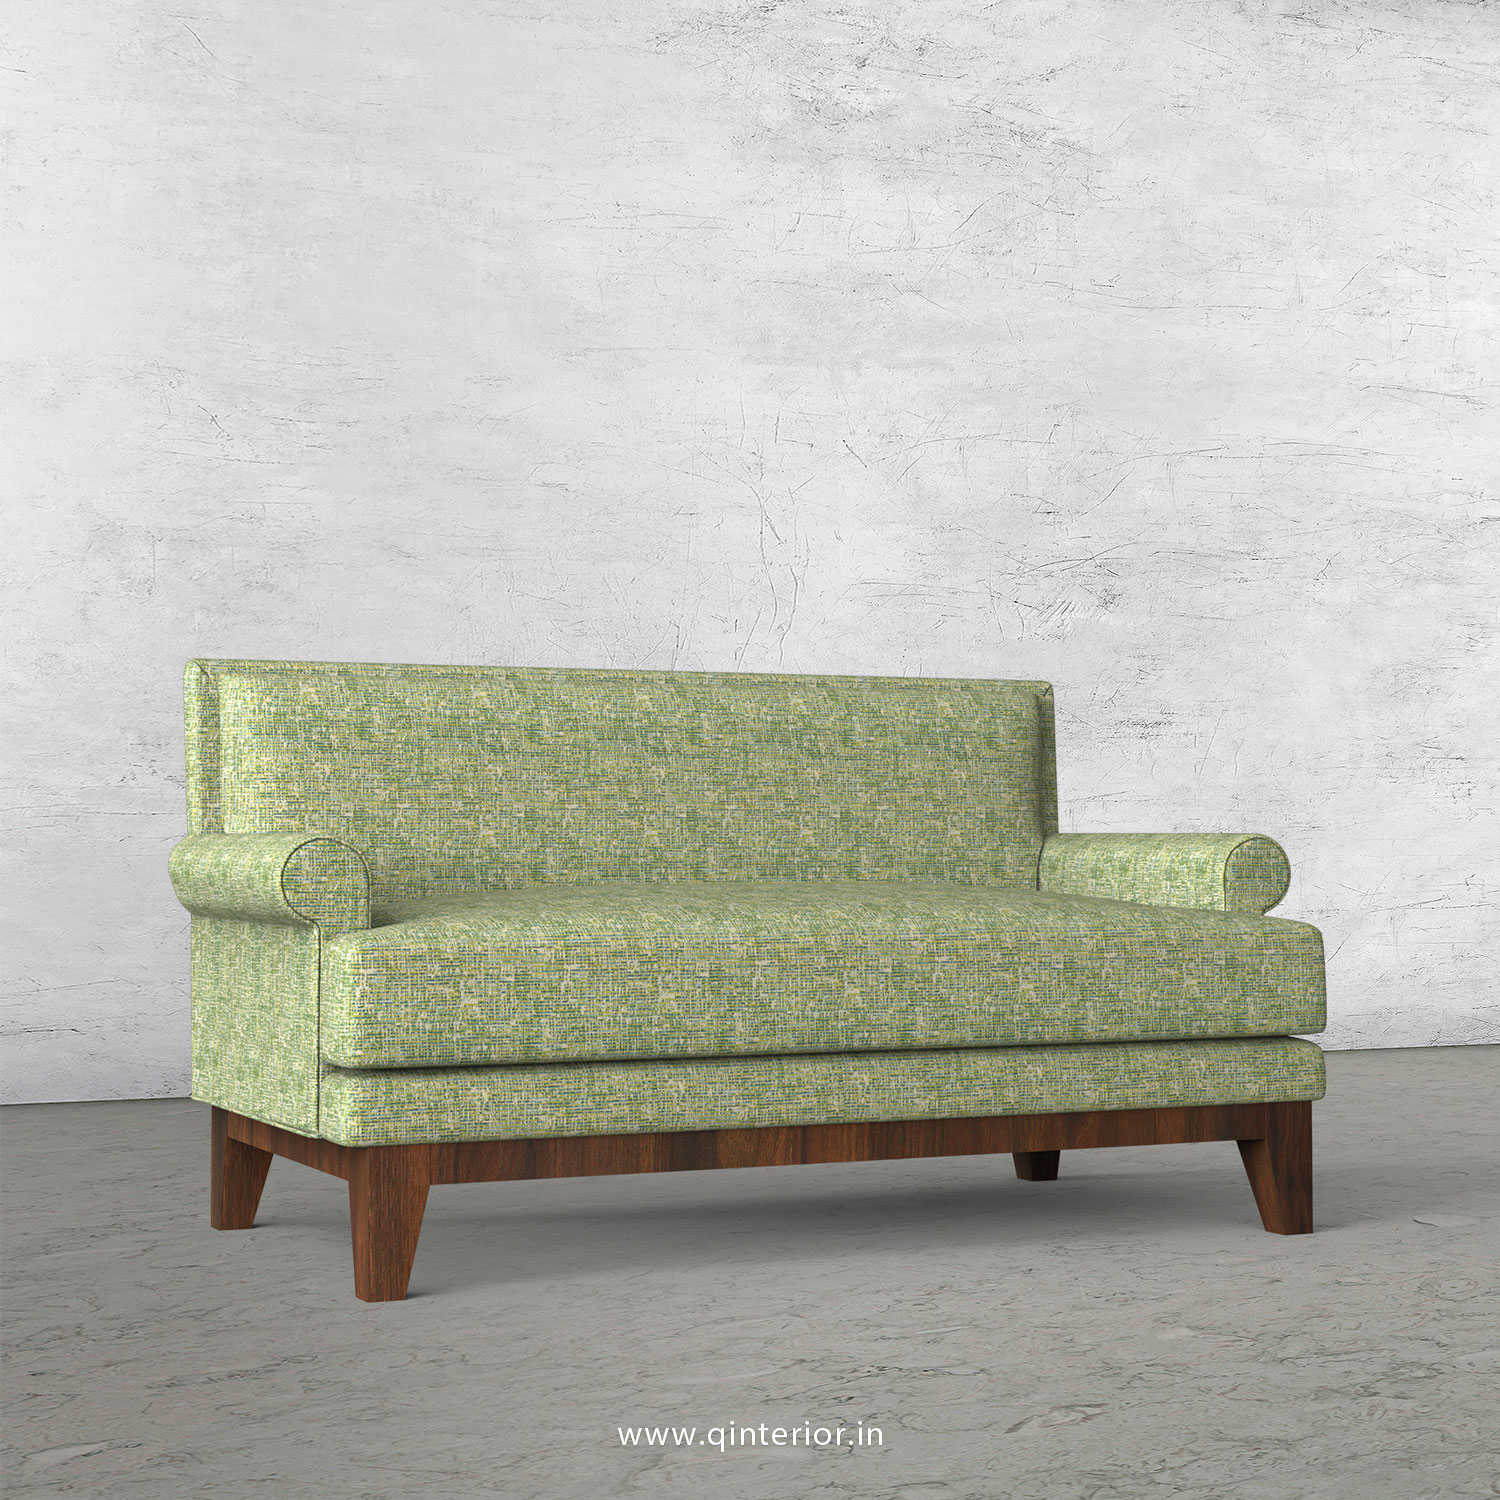 Aviana 2 Seater Sofa in Jacquard - SFA001 JQ22